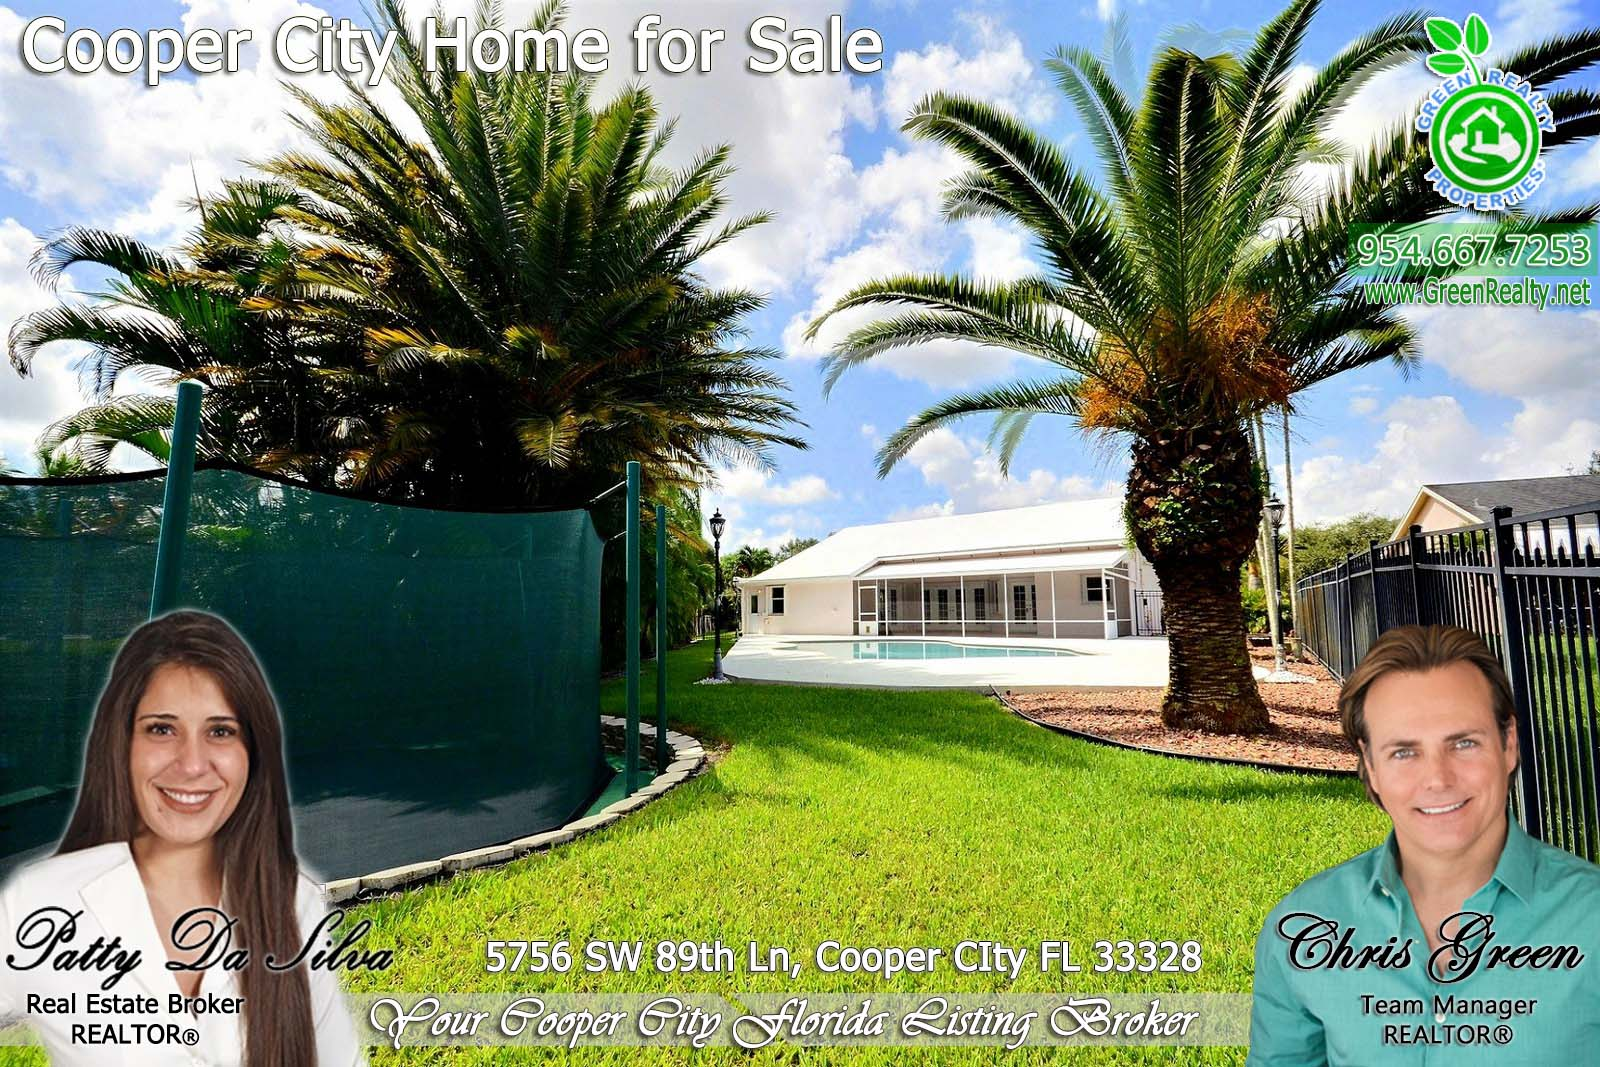 Coopers Pointe - Cooper City Florida Homes For Sale (16)